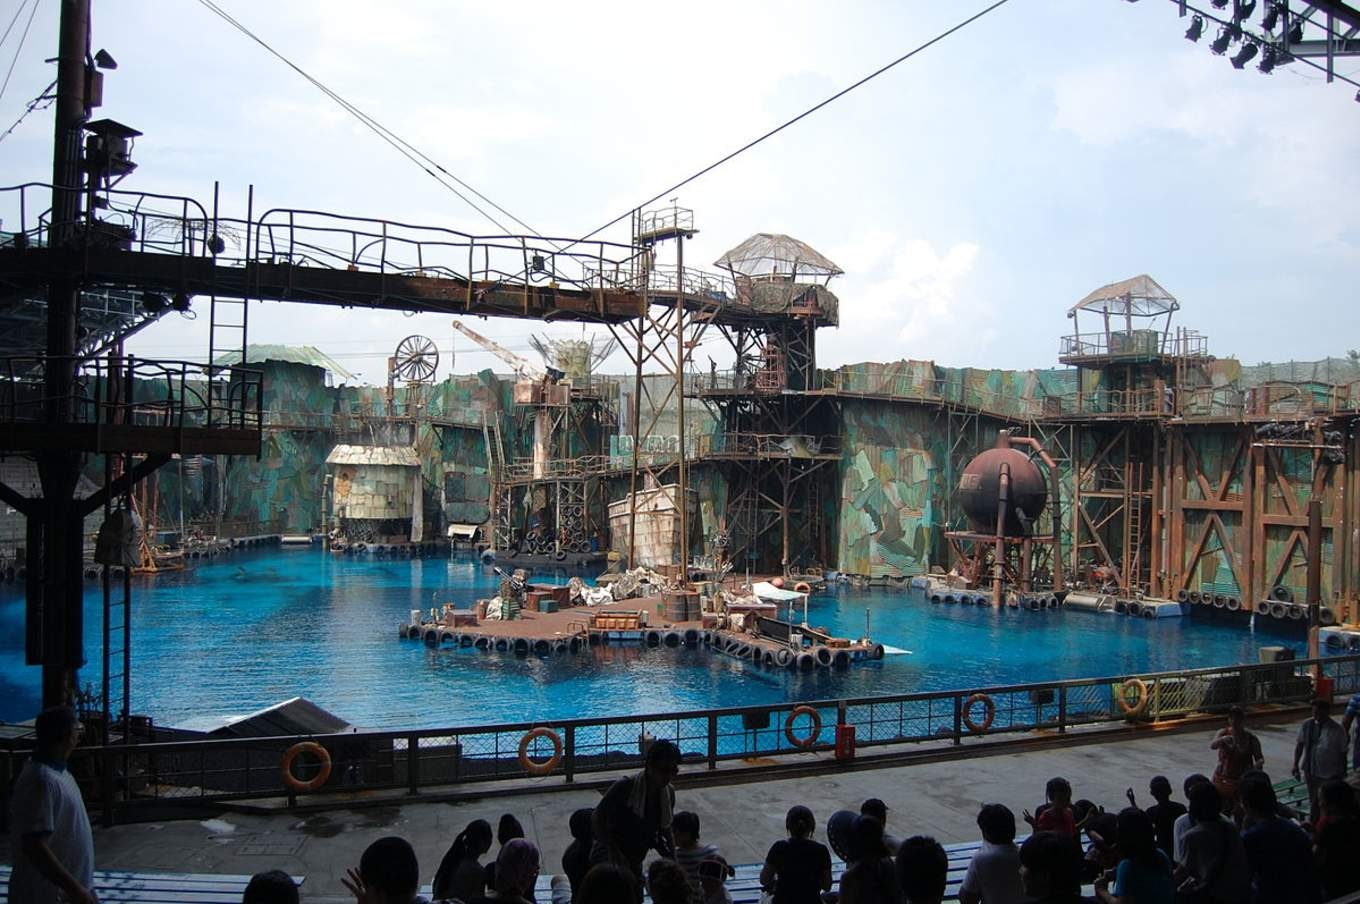 The Lost World Attraction at Universal Studios Singapore